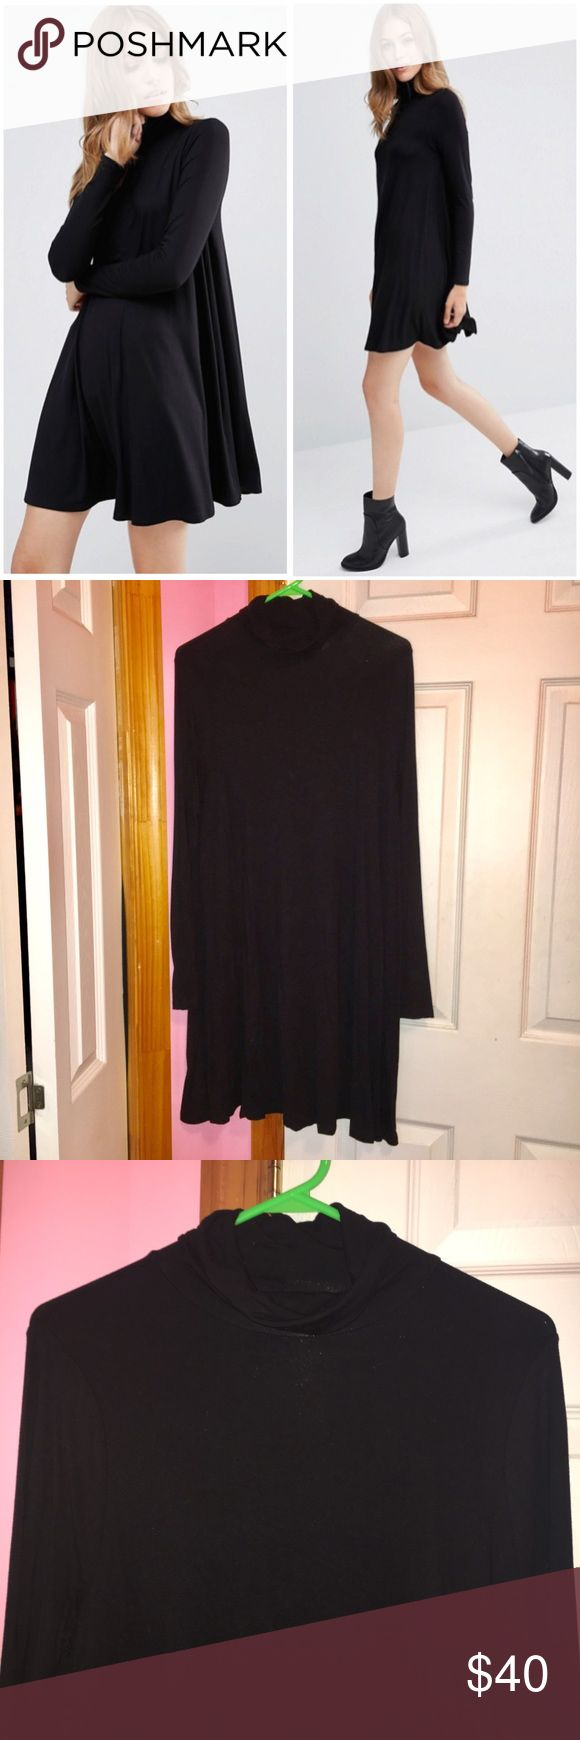 """✨SALE✨ ASOS Turtleneck Swing Dress Sale price is firm so no offers will be accepted. Only worn once. Swing dress with a turtleneck. Long sleeves. Loose fit. 92% viscose and 8% elastane. Laying flat dress is approx 35"""" in length and bust is approx 38"""". Stock photos from ASOS. ❌NO TRADES❌ ASOS Dresses"""